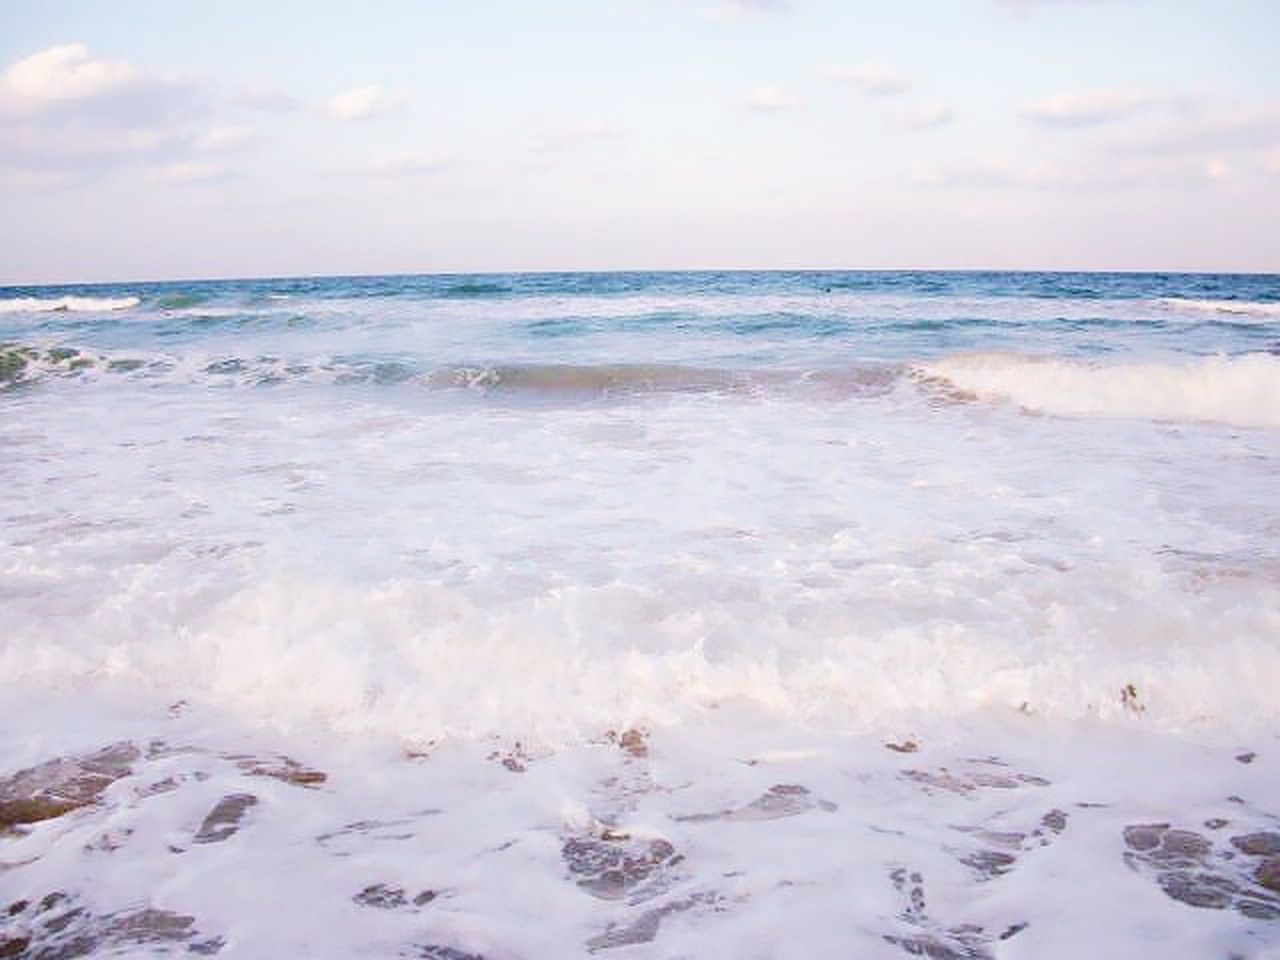 sea, water, nature, beauty in nature, horizon over water, scenics, tranquility, tranquil scene, sky, outdoors, beach, no people, day, wave